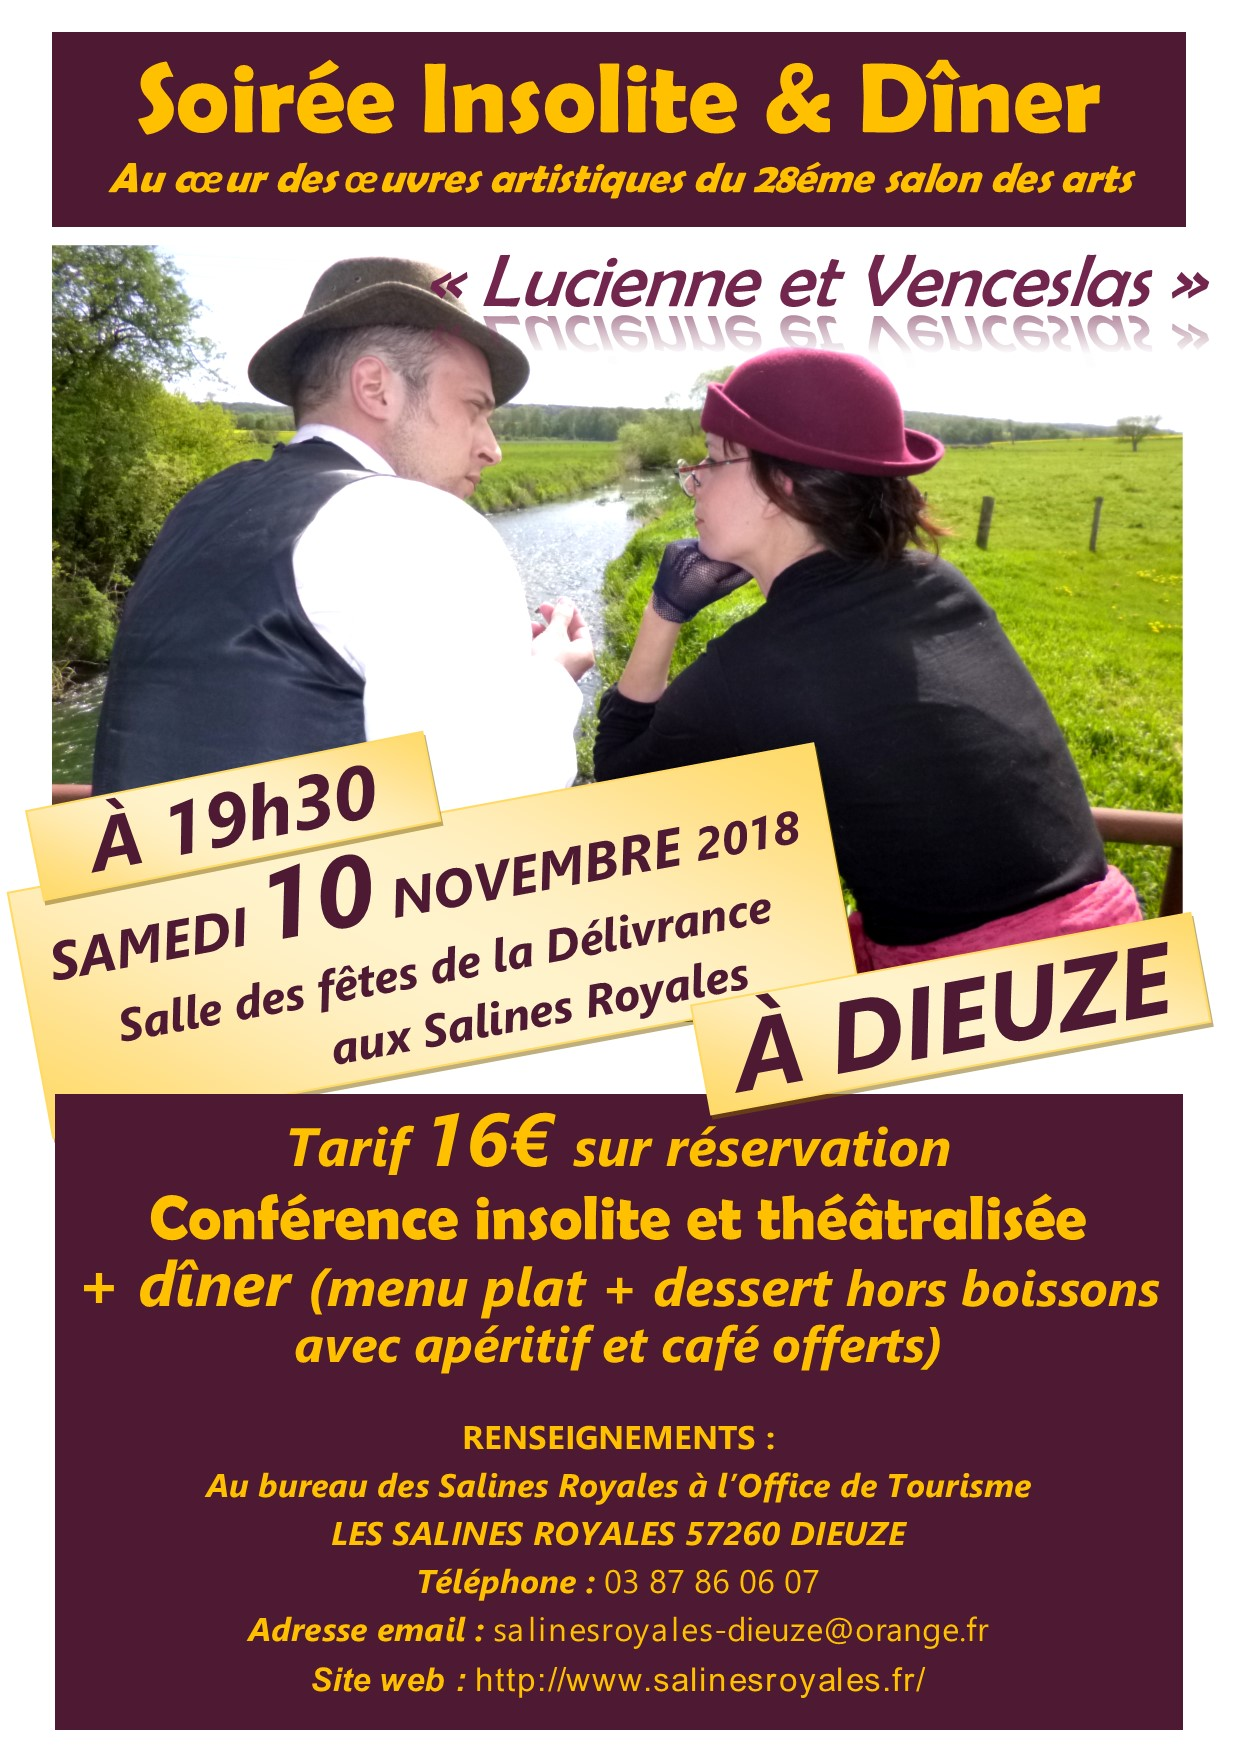 SALON DES ARTS 2018 FLYER 2